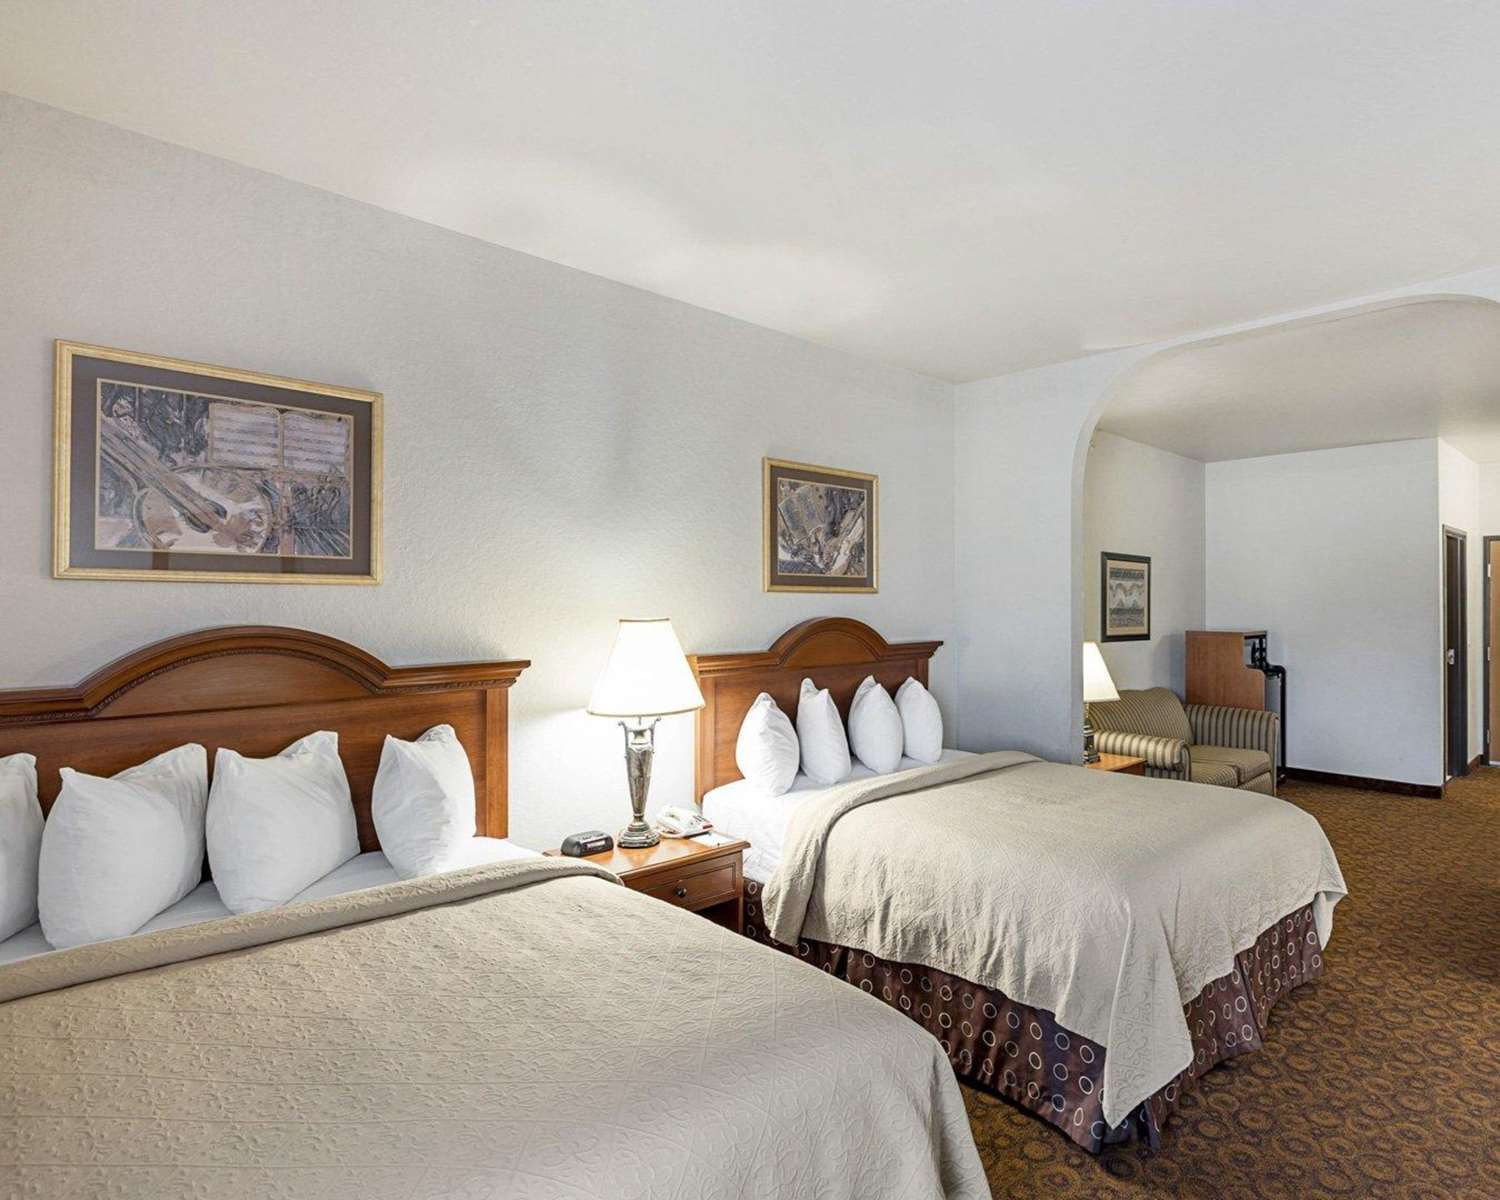 quality hardwood floors san marcos tx of quality suites san antonio tx see discounts within room quality suites san antonio